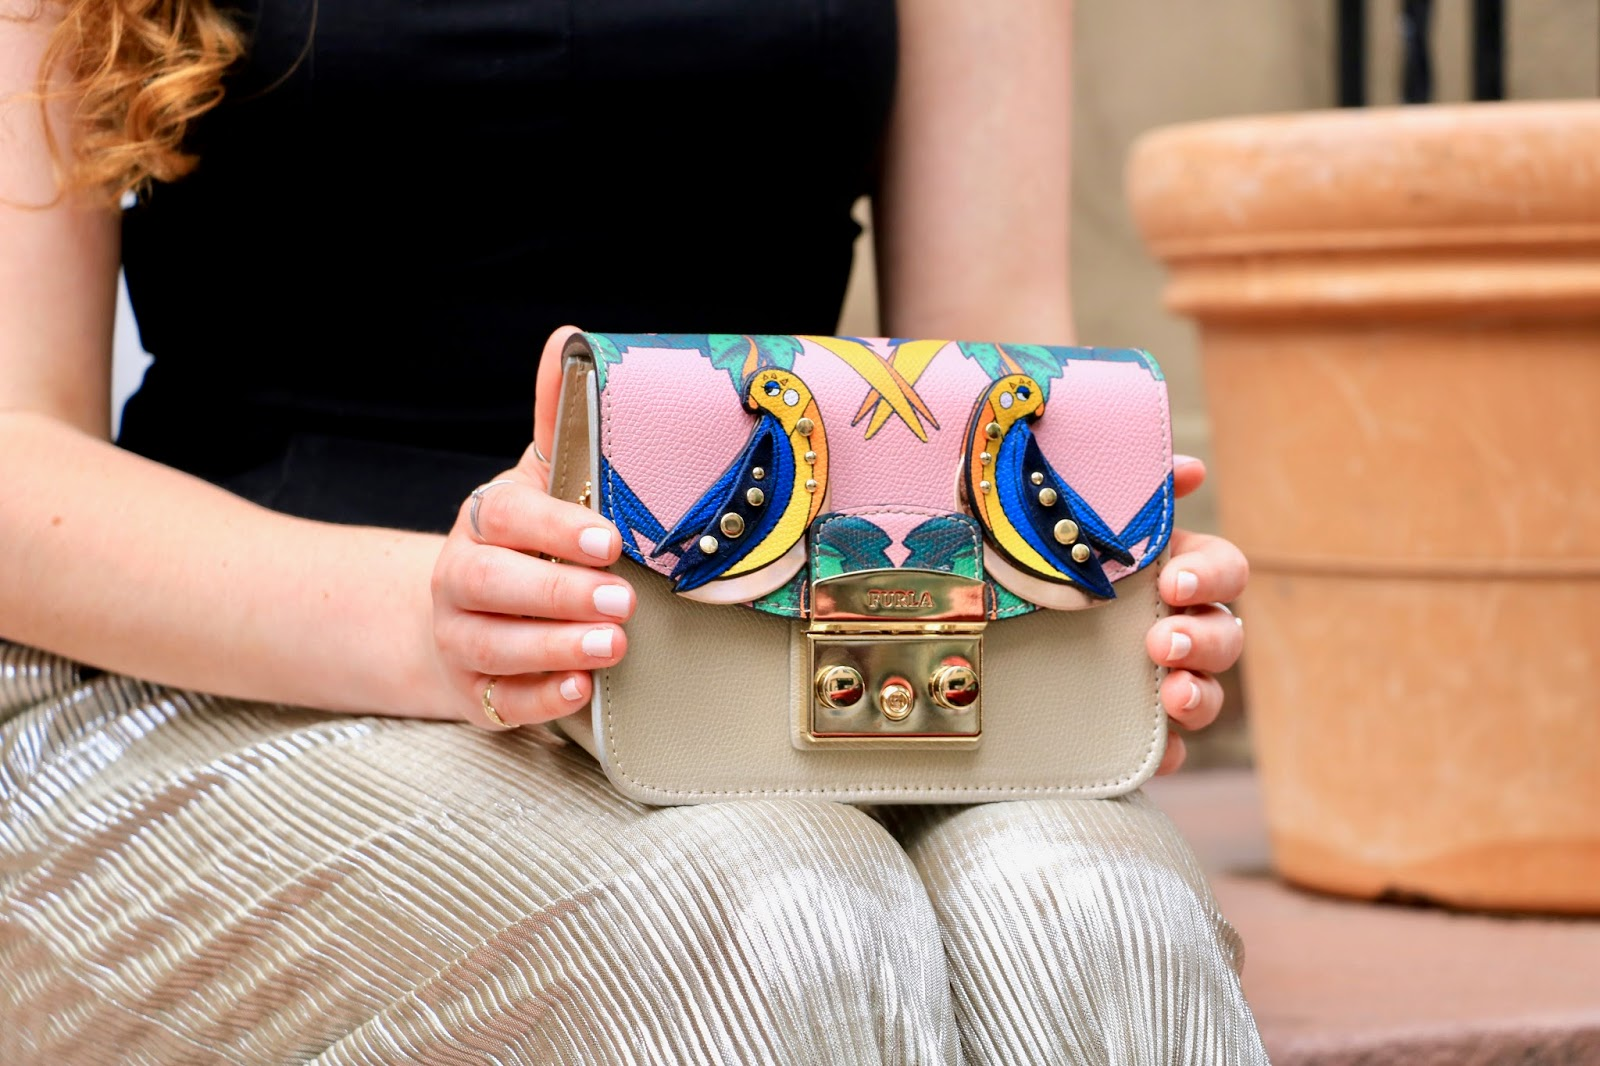 nyc fashion blogger Kathleen Harper holding a Furla mini bag crossbody